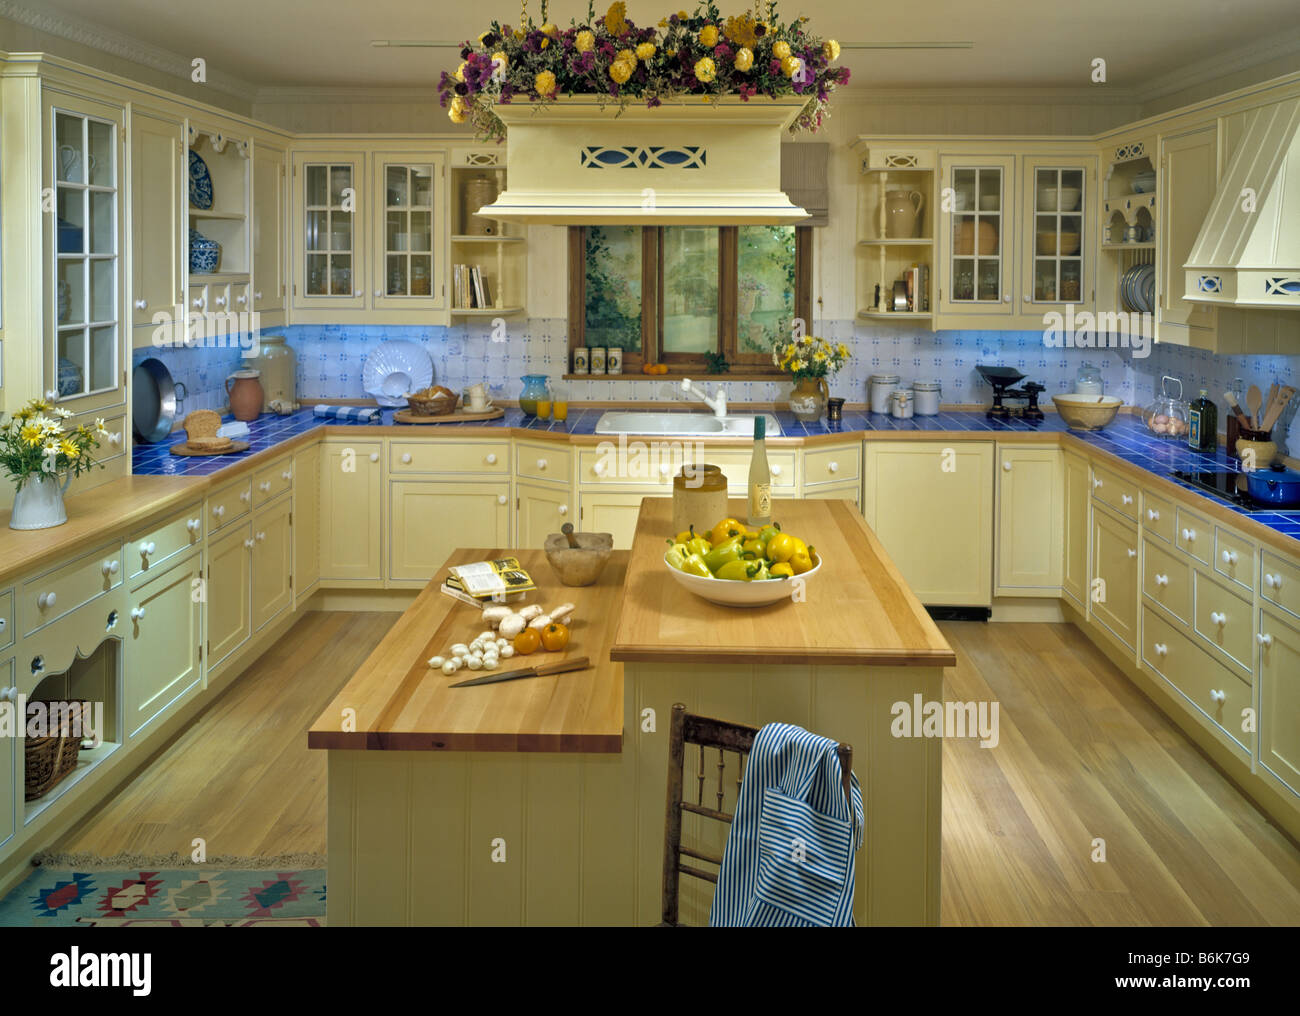 Architectural Interior Design Homes Houses Estate Kitchen Appliances Island Counter Lighting Pots Pans Showroom Stock Photo